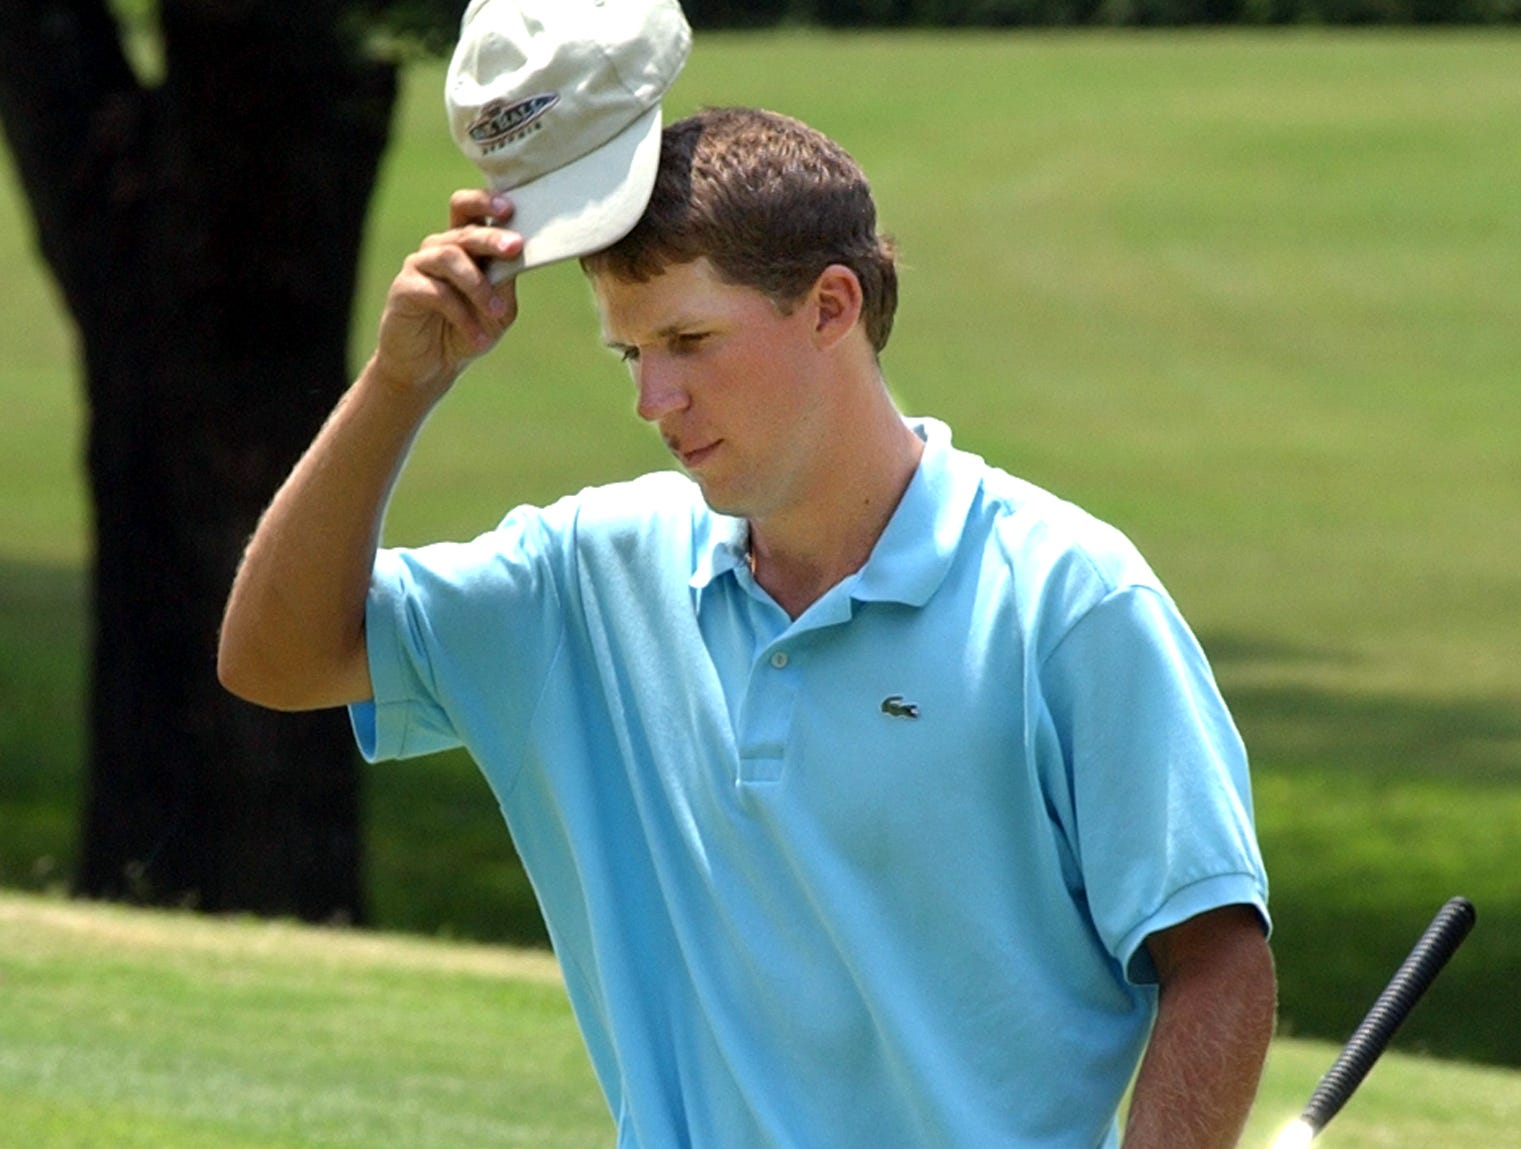 Thu, 22 Jul 04 (ddmga3)  DIGITAL IMAGE by Dave Darnell.  Alan Weant (cq) tips his cap after winning the MGA Amateur Championship at Germantown Country Club.  He finished at 218 to win the 54-hole event.  Brice Bailey (cq) (Not Pictured) finished second at 219 and Matt Lingle (cq) (Not Pictured) finished third at 220.